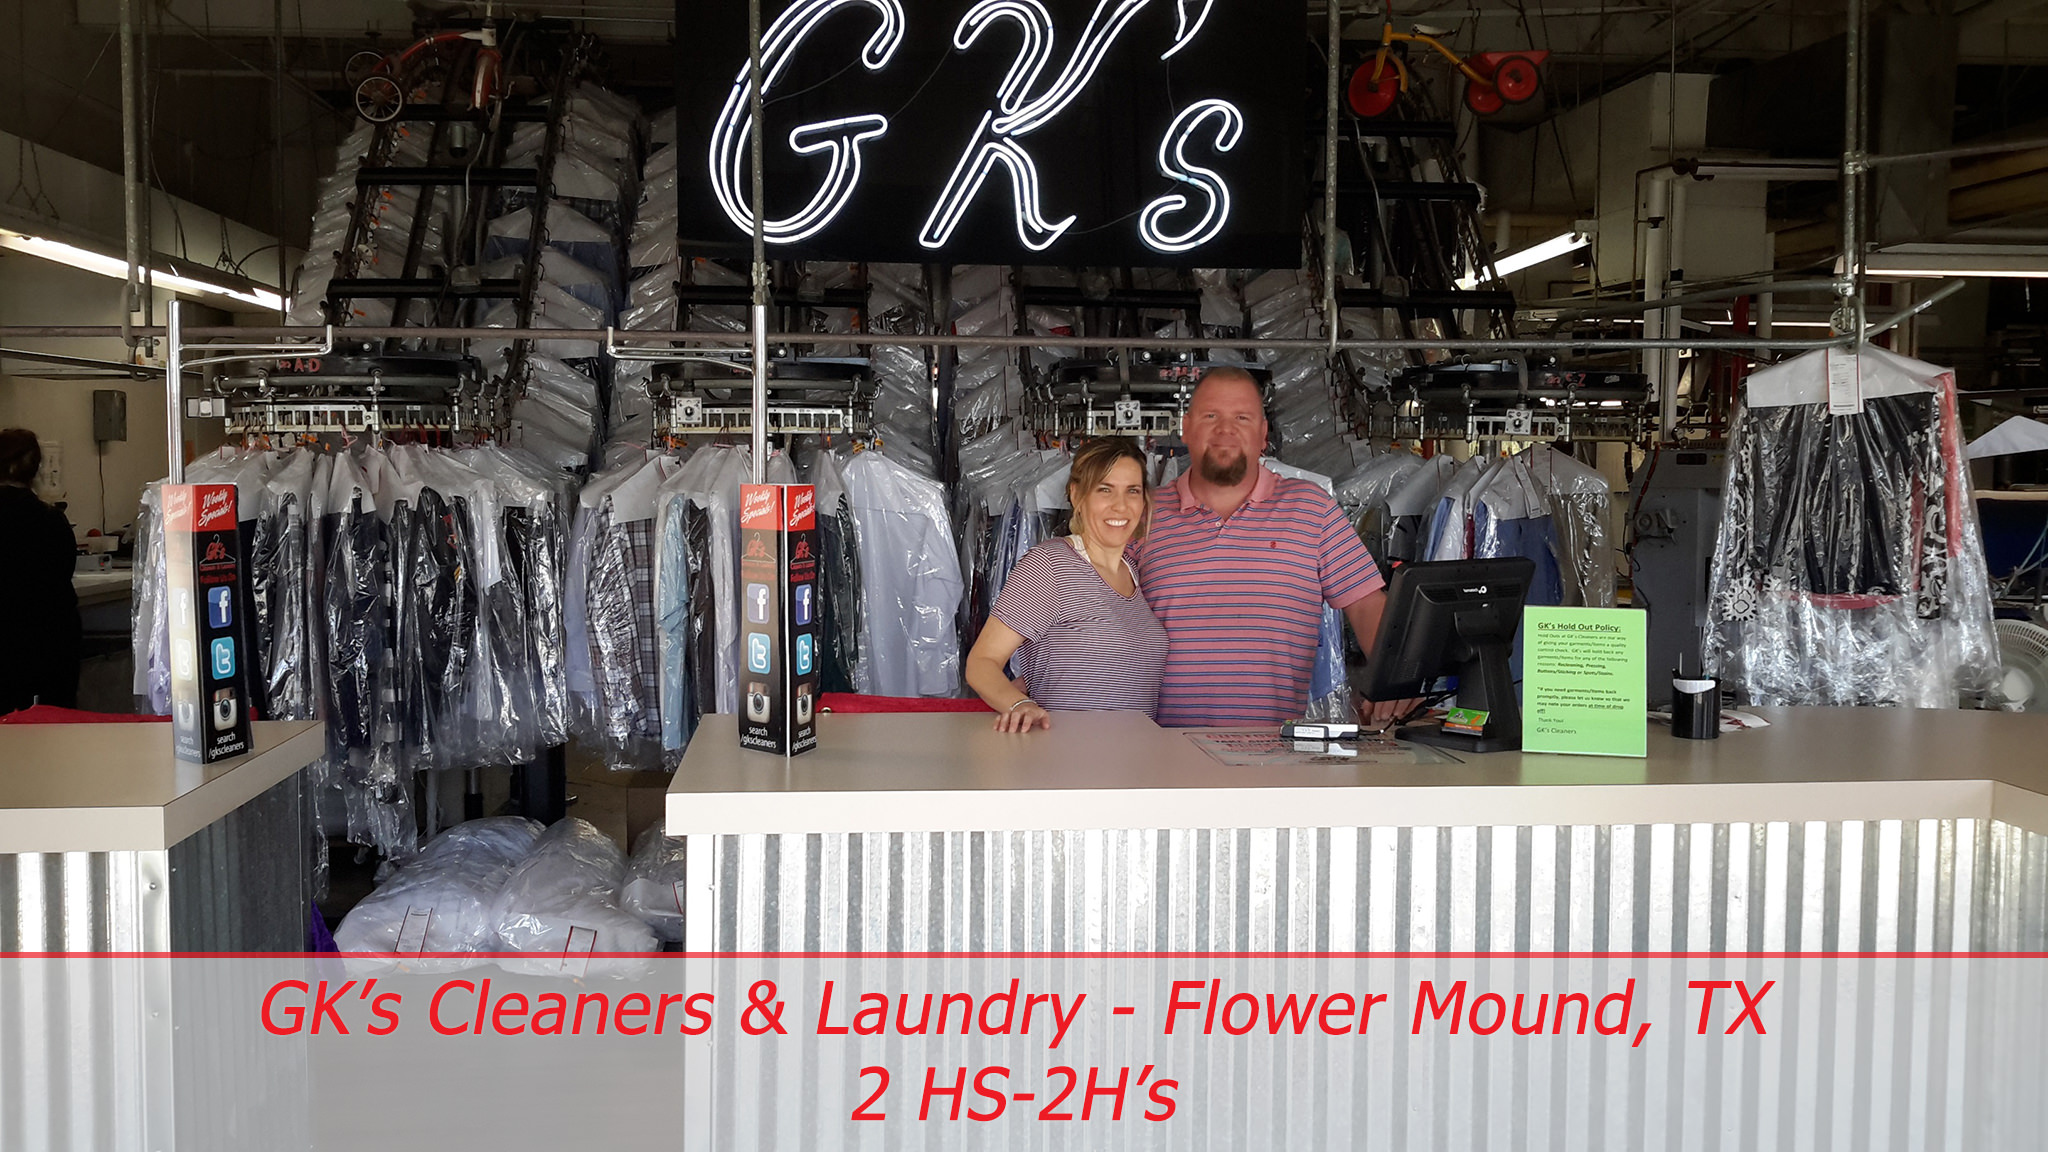 GK's Cleaners & Laundry